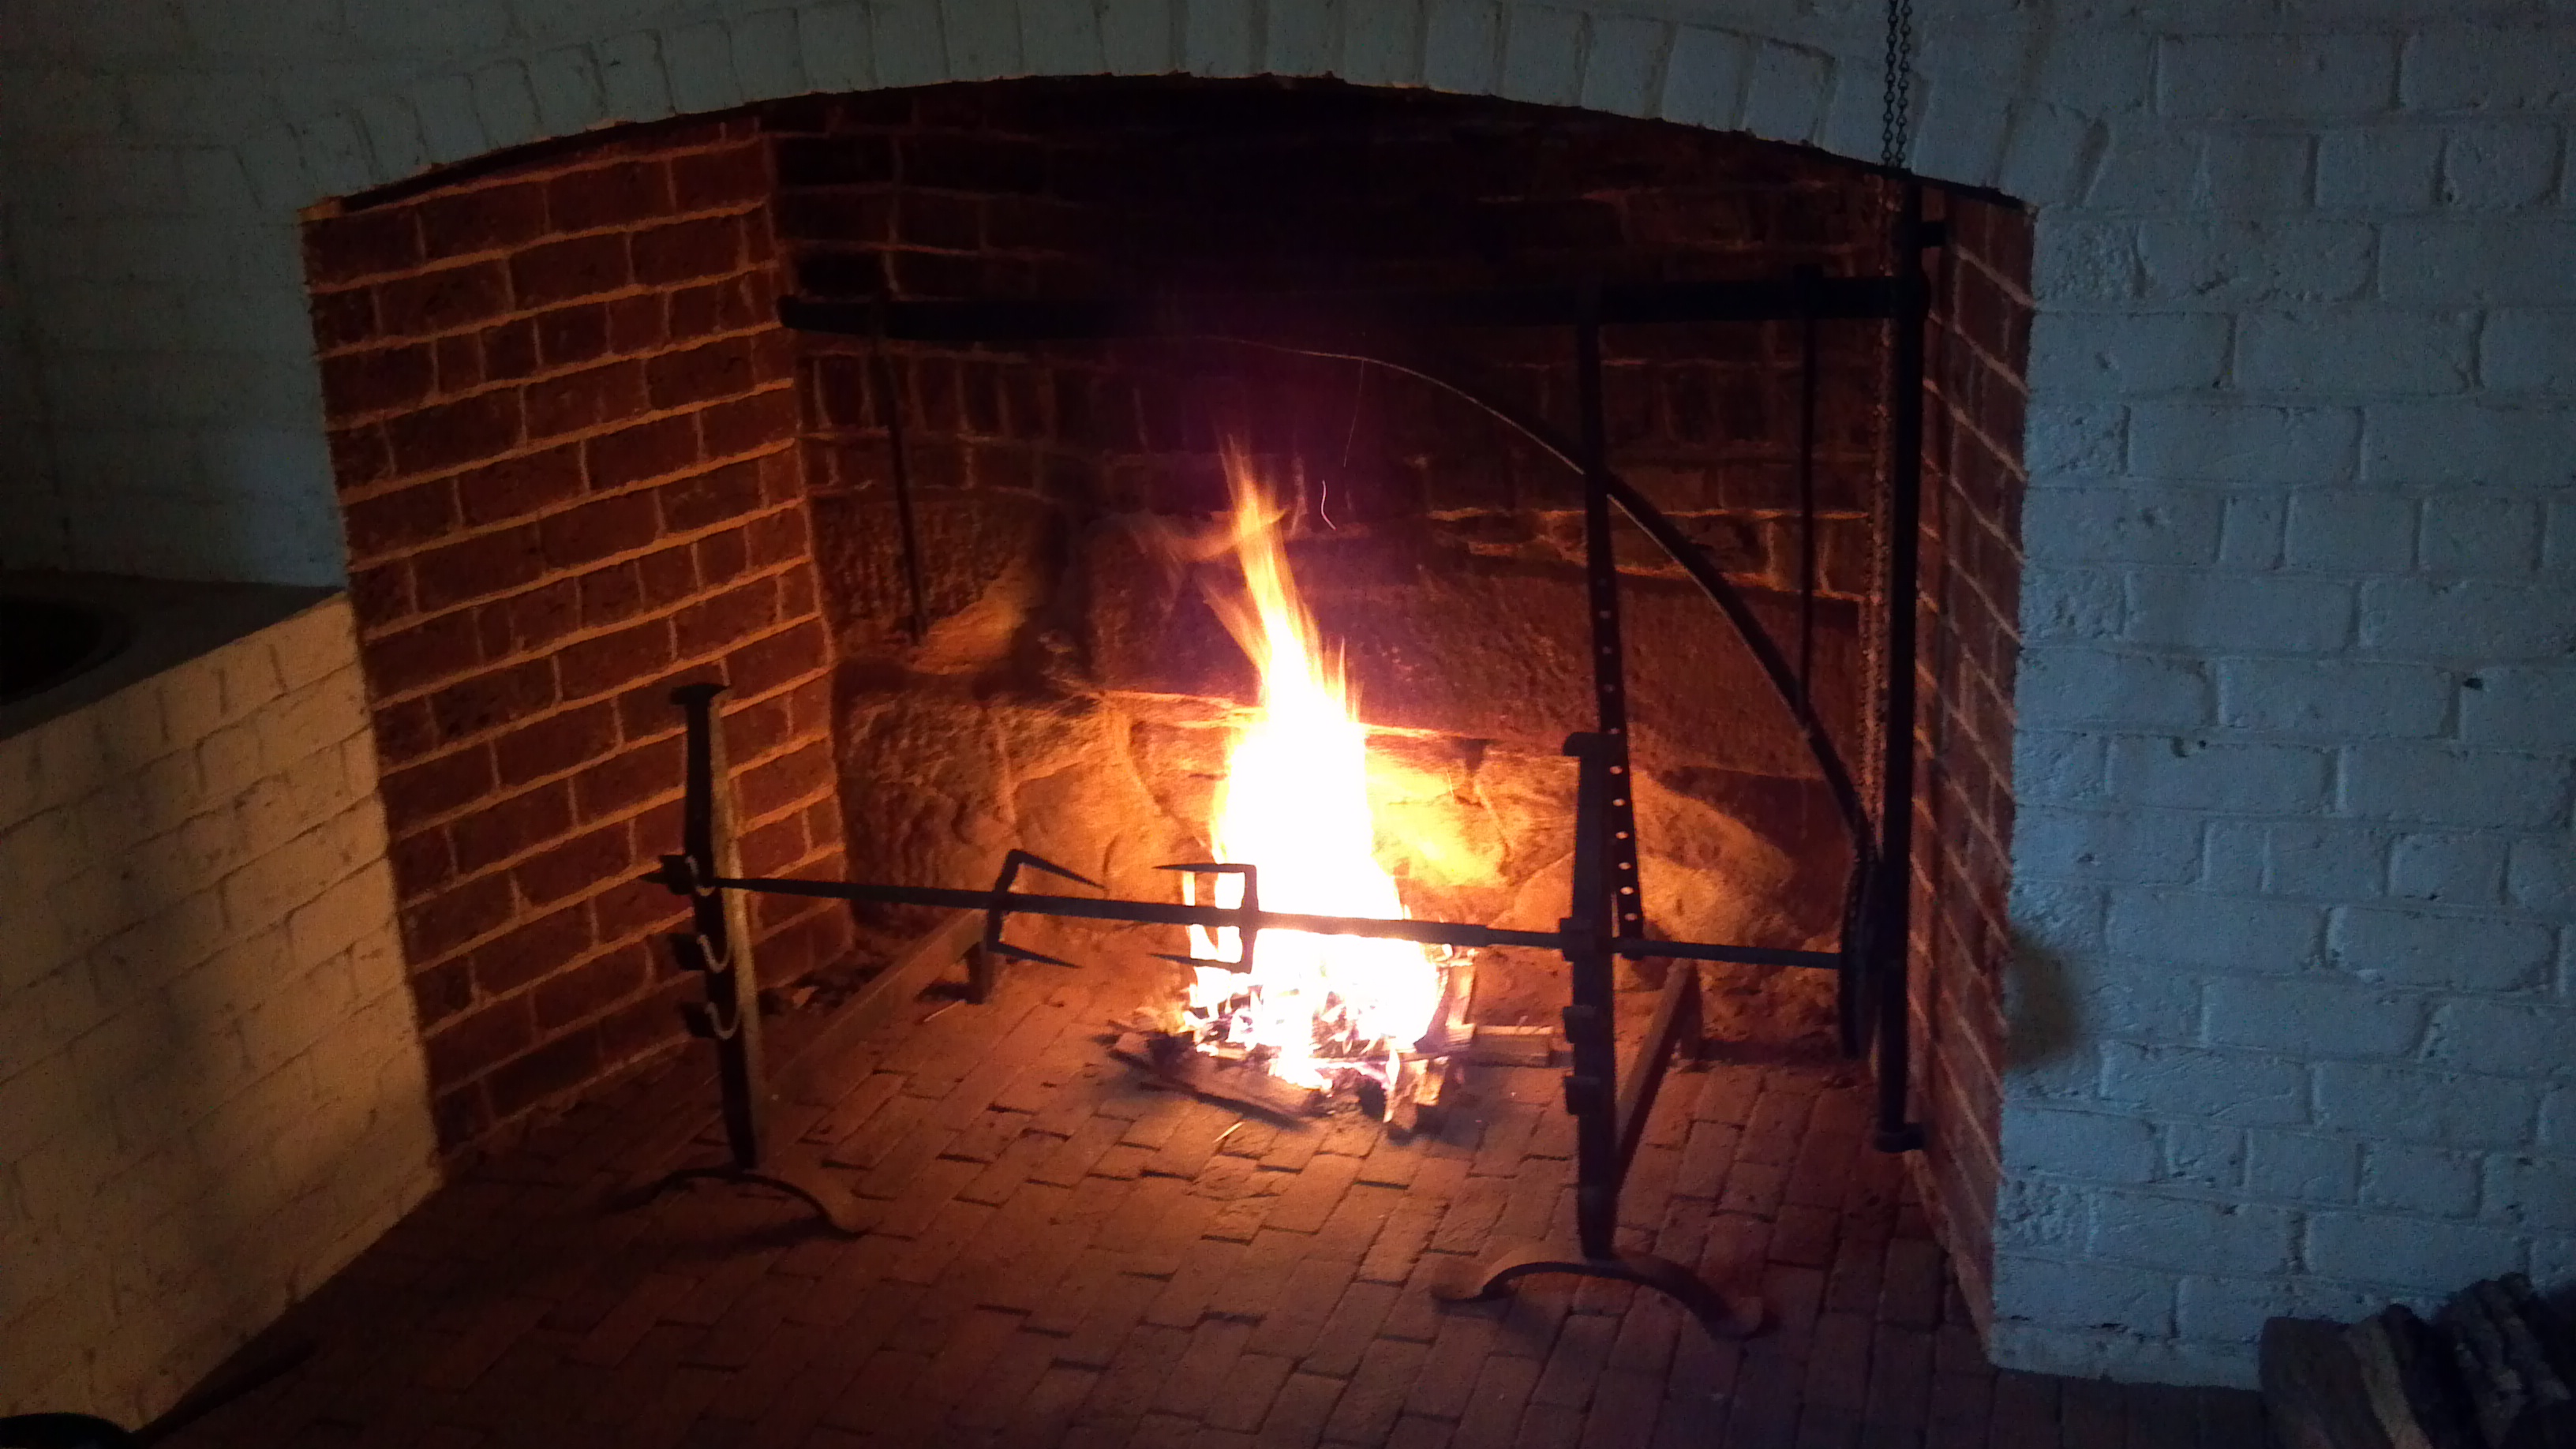 Monticello Hearth Cooking at the Heritage Harvest Festival 2016